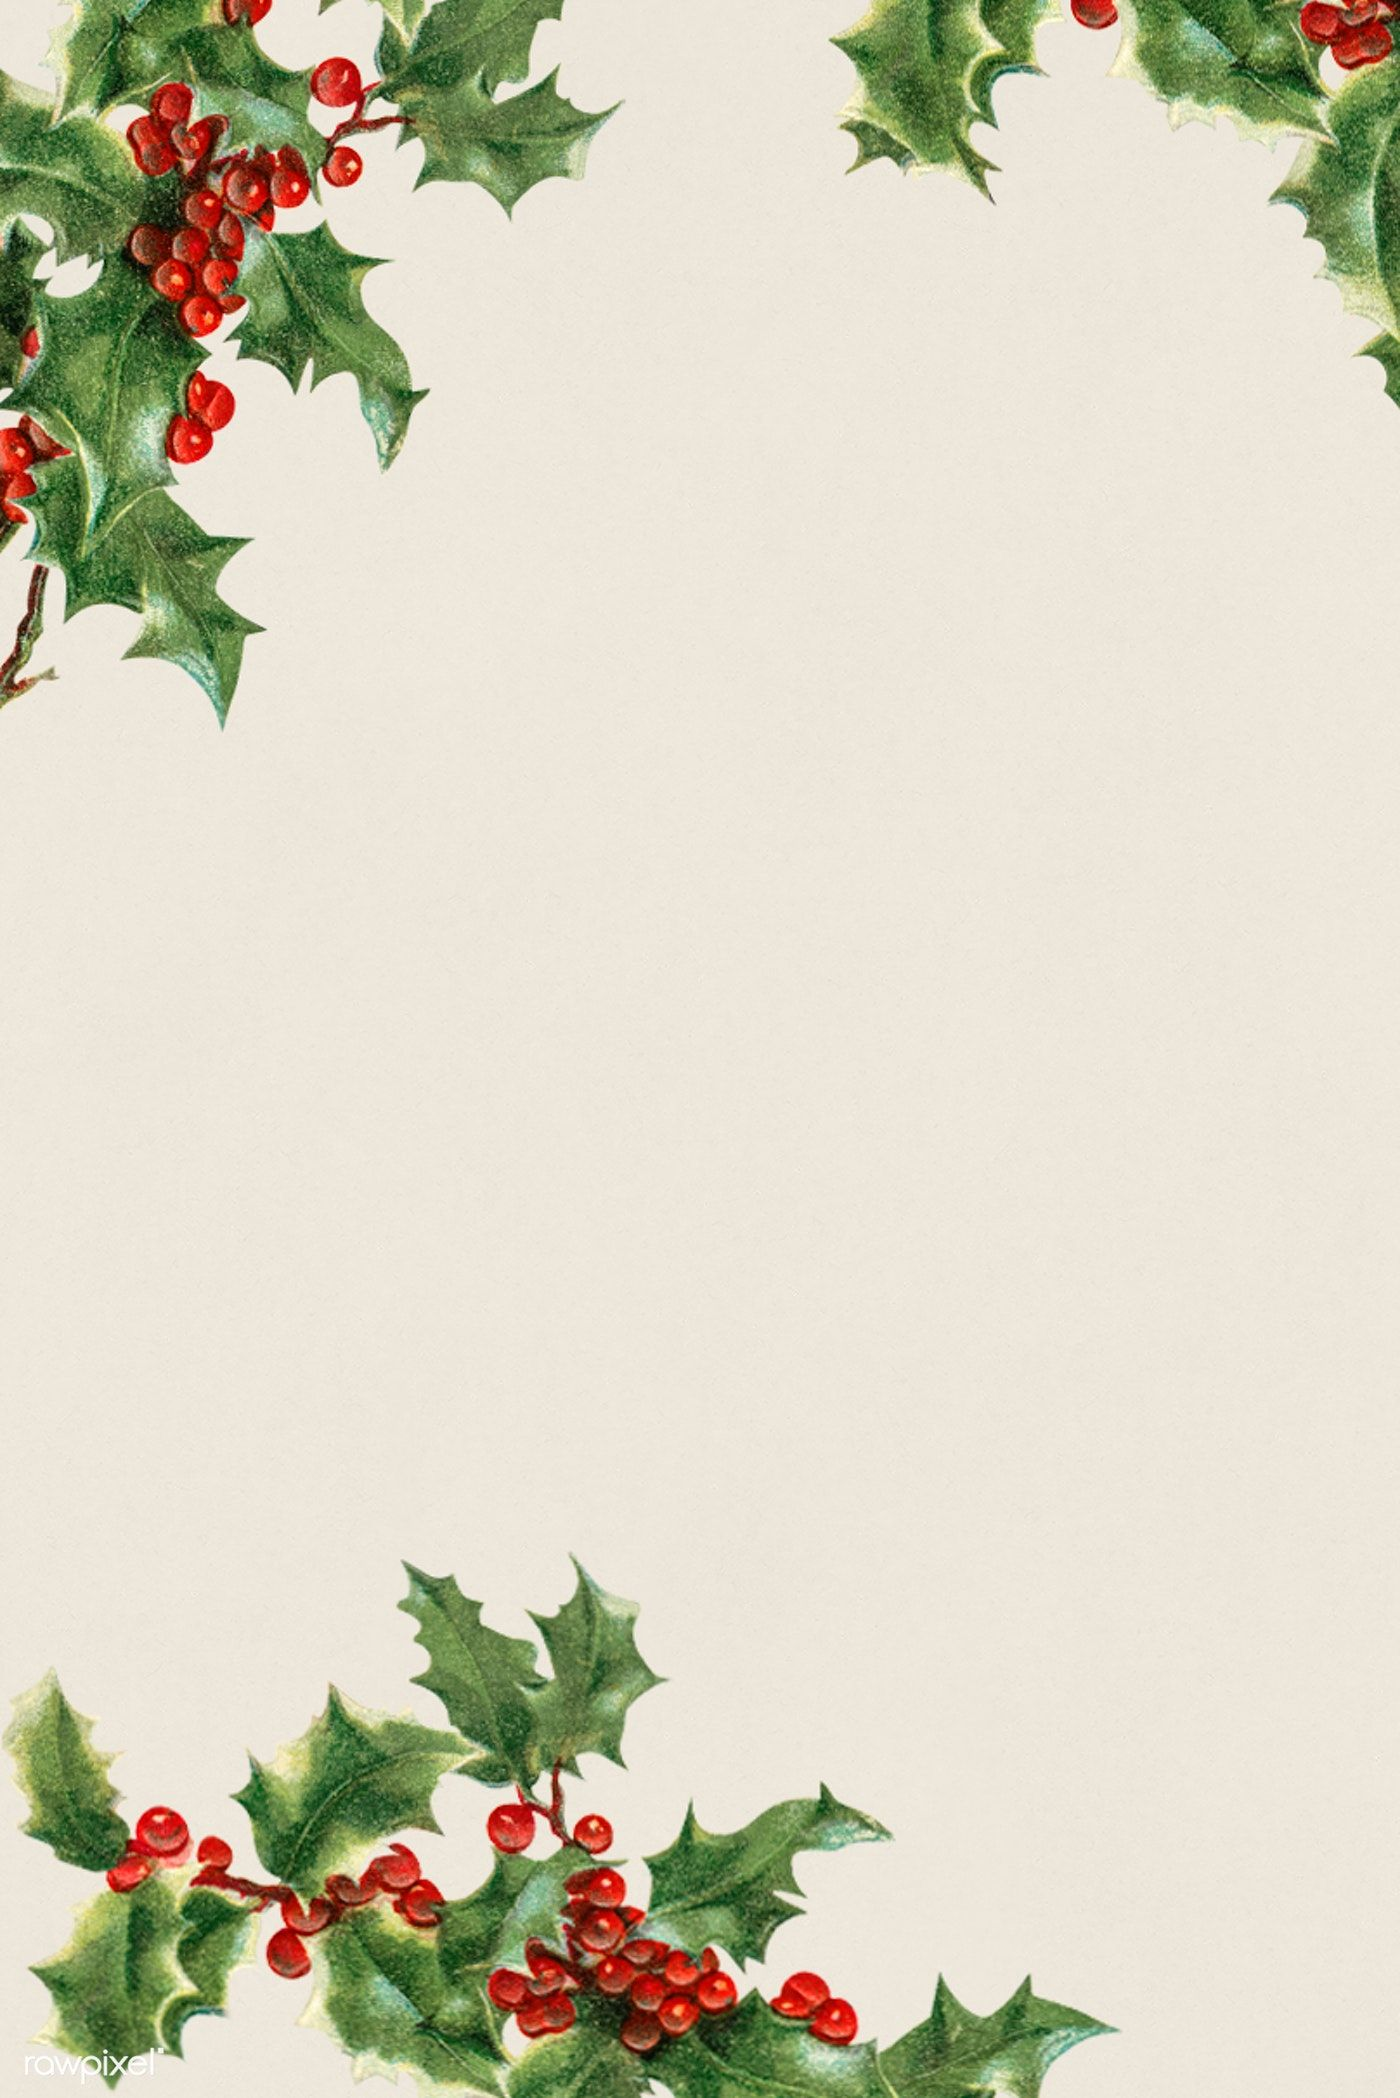 Download Premium Illustration Of Blank Holly Leaves Frame Illustration Cute Christmas Wallpaper Christmas Frames Christmas Card Design